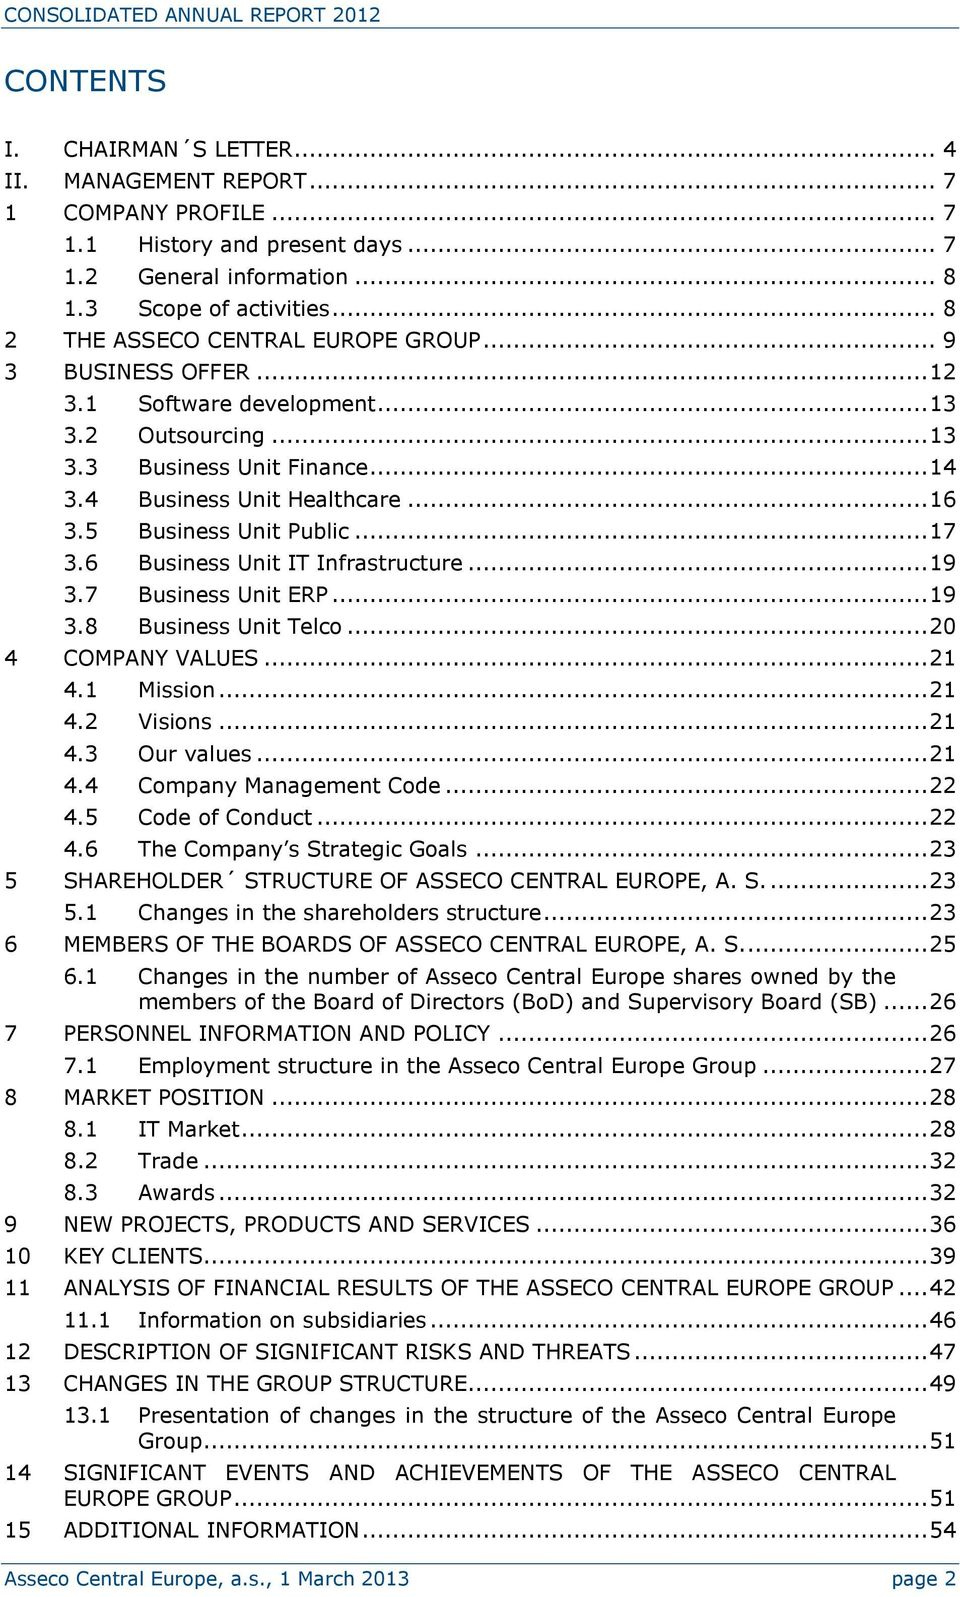 4 Business Unit Healthcare... 16 3.5 Business Unit Public... 17 3.6 Business Unit IT Infrastructure... 19 3.7 Business Unit ERP... 19 3.8 Business Unit Telco... 20 4 COMPANY VALUES... 21 4.1 Mission.